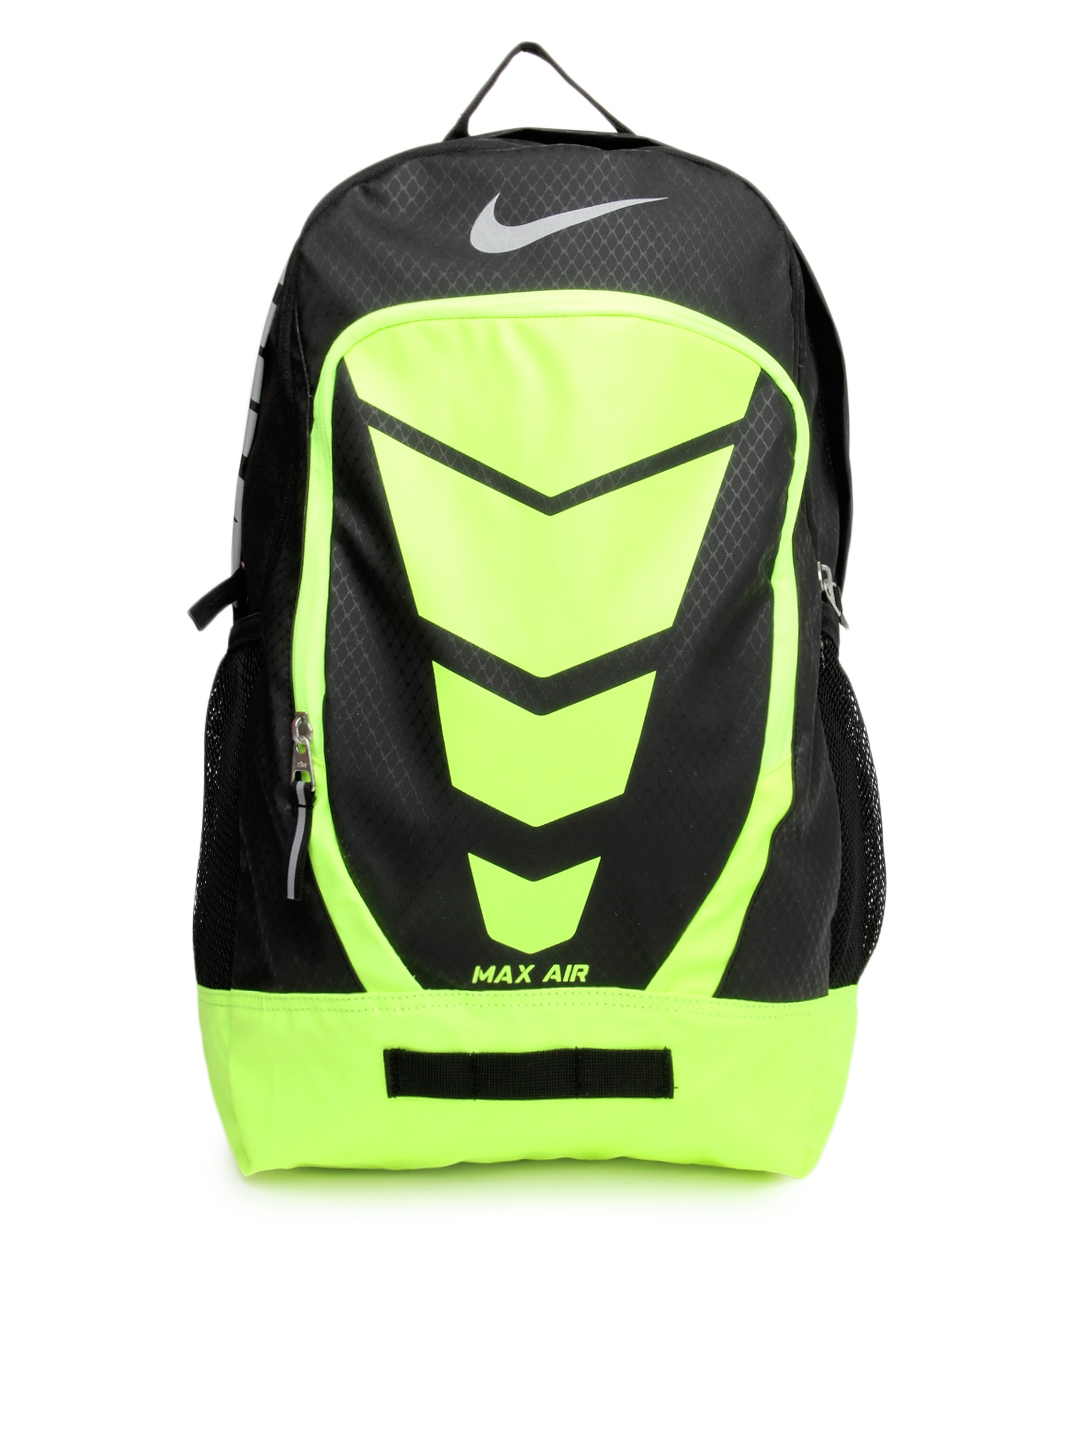 ddb190c330 Buy Nike Unisex Black   Fluoroscent Green Max Air Vapor Backpack - Backpacks  for Unisex 654423